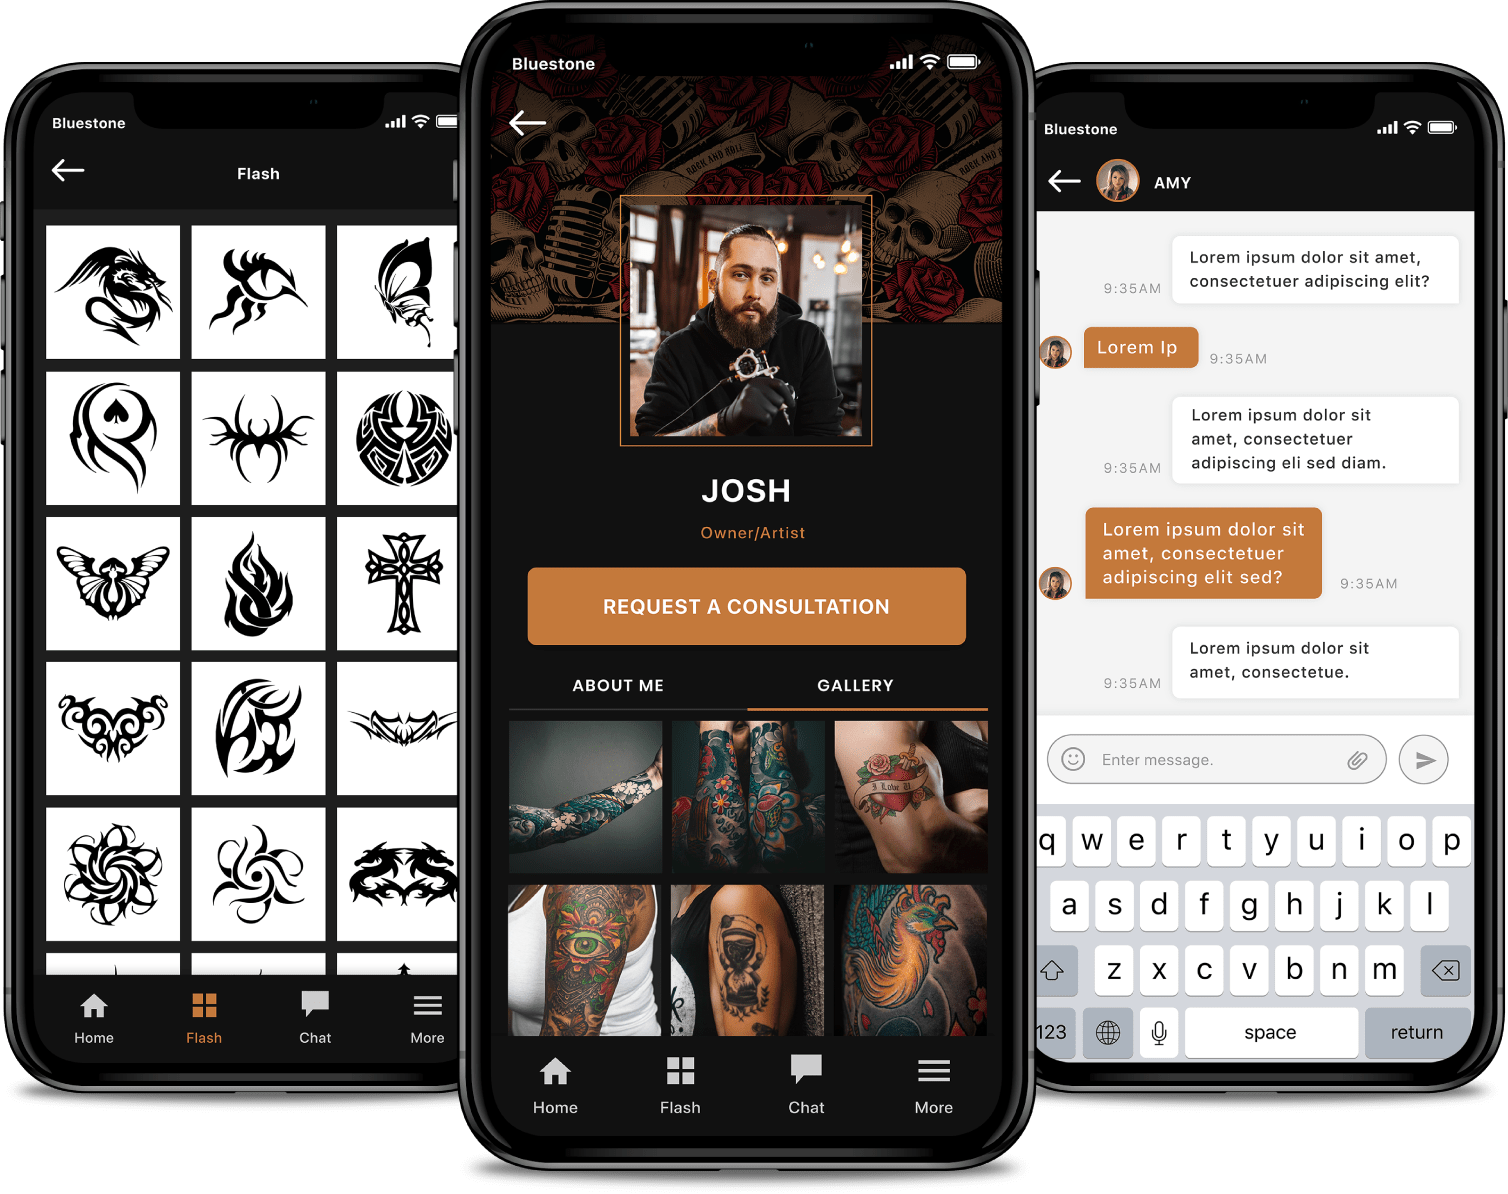 Tattoo-Artist-Profile-Gallery-and-Messaging-App-Screens